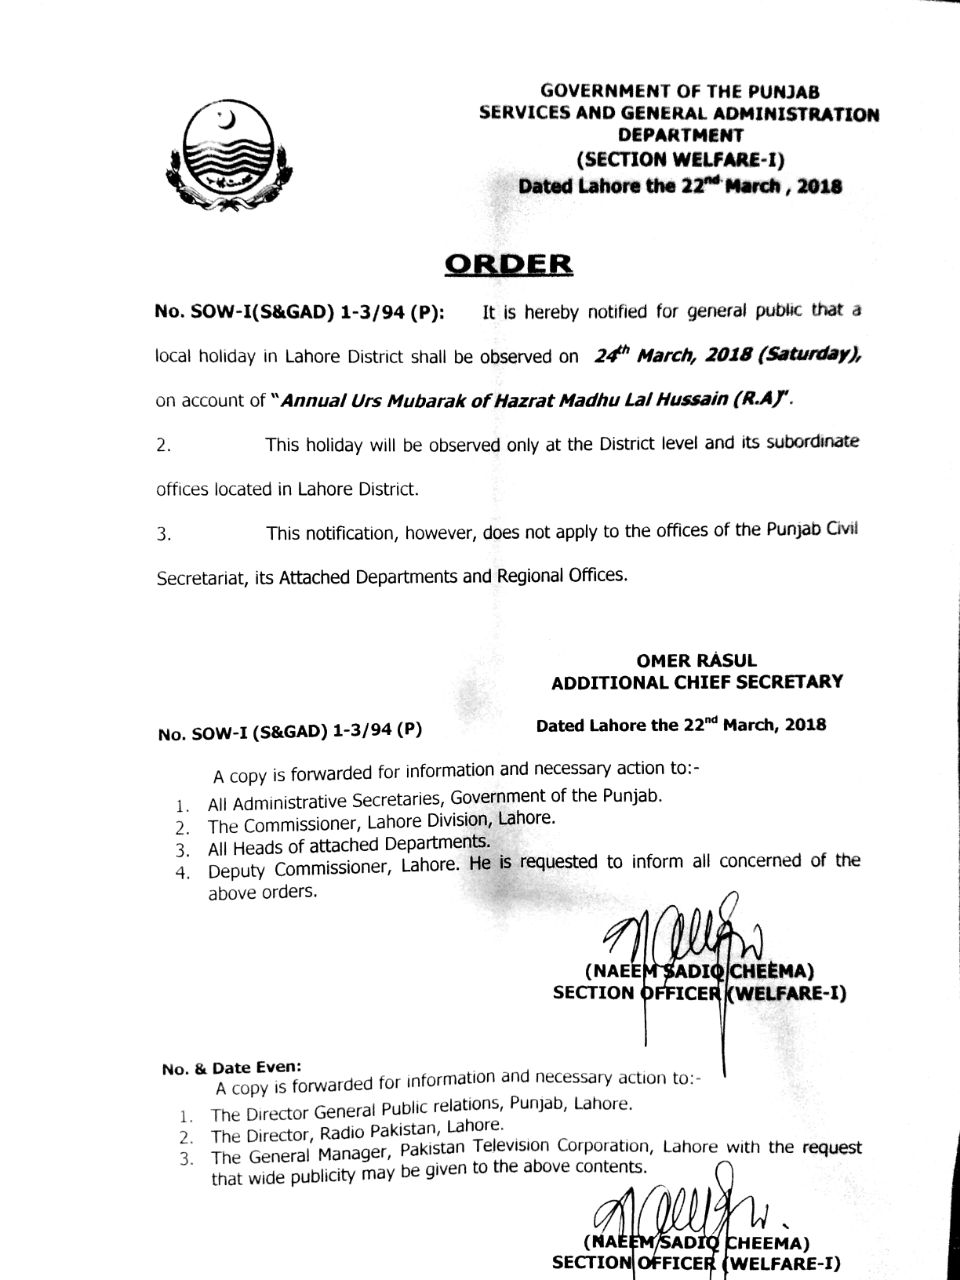 Notification of Local Holiday Lahore & Jhang on 24th March 2018